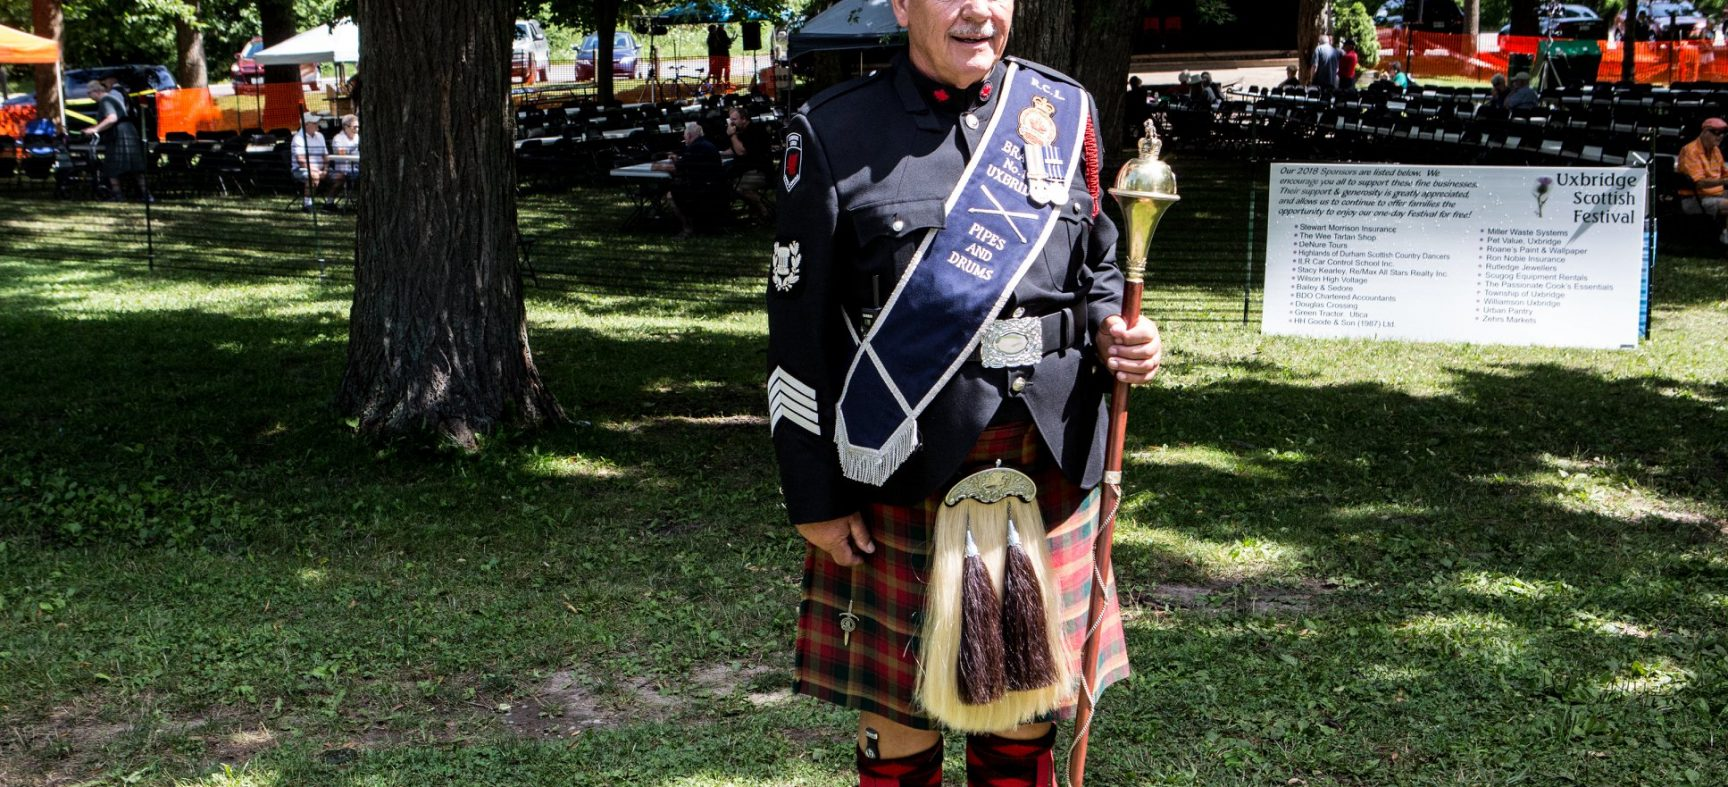 Uxbridge Scottish Festival